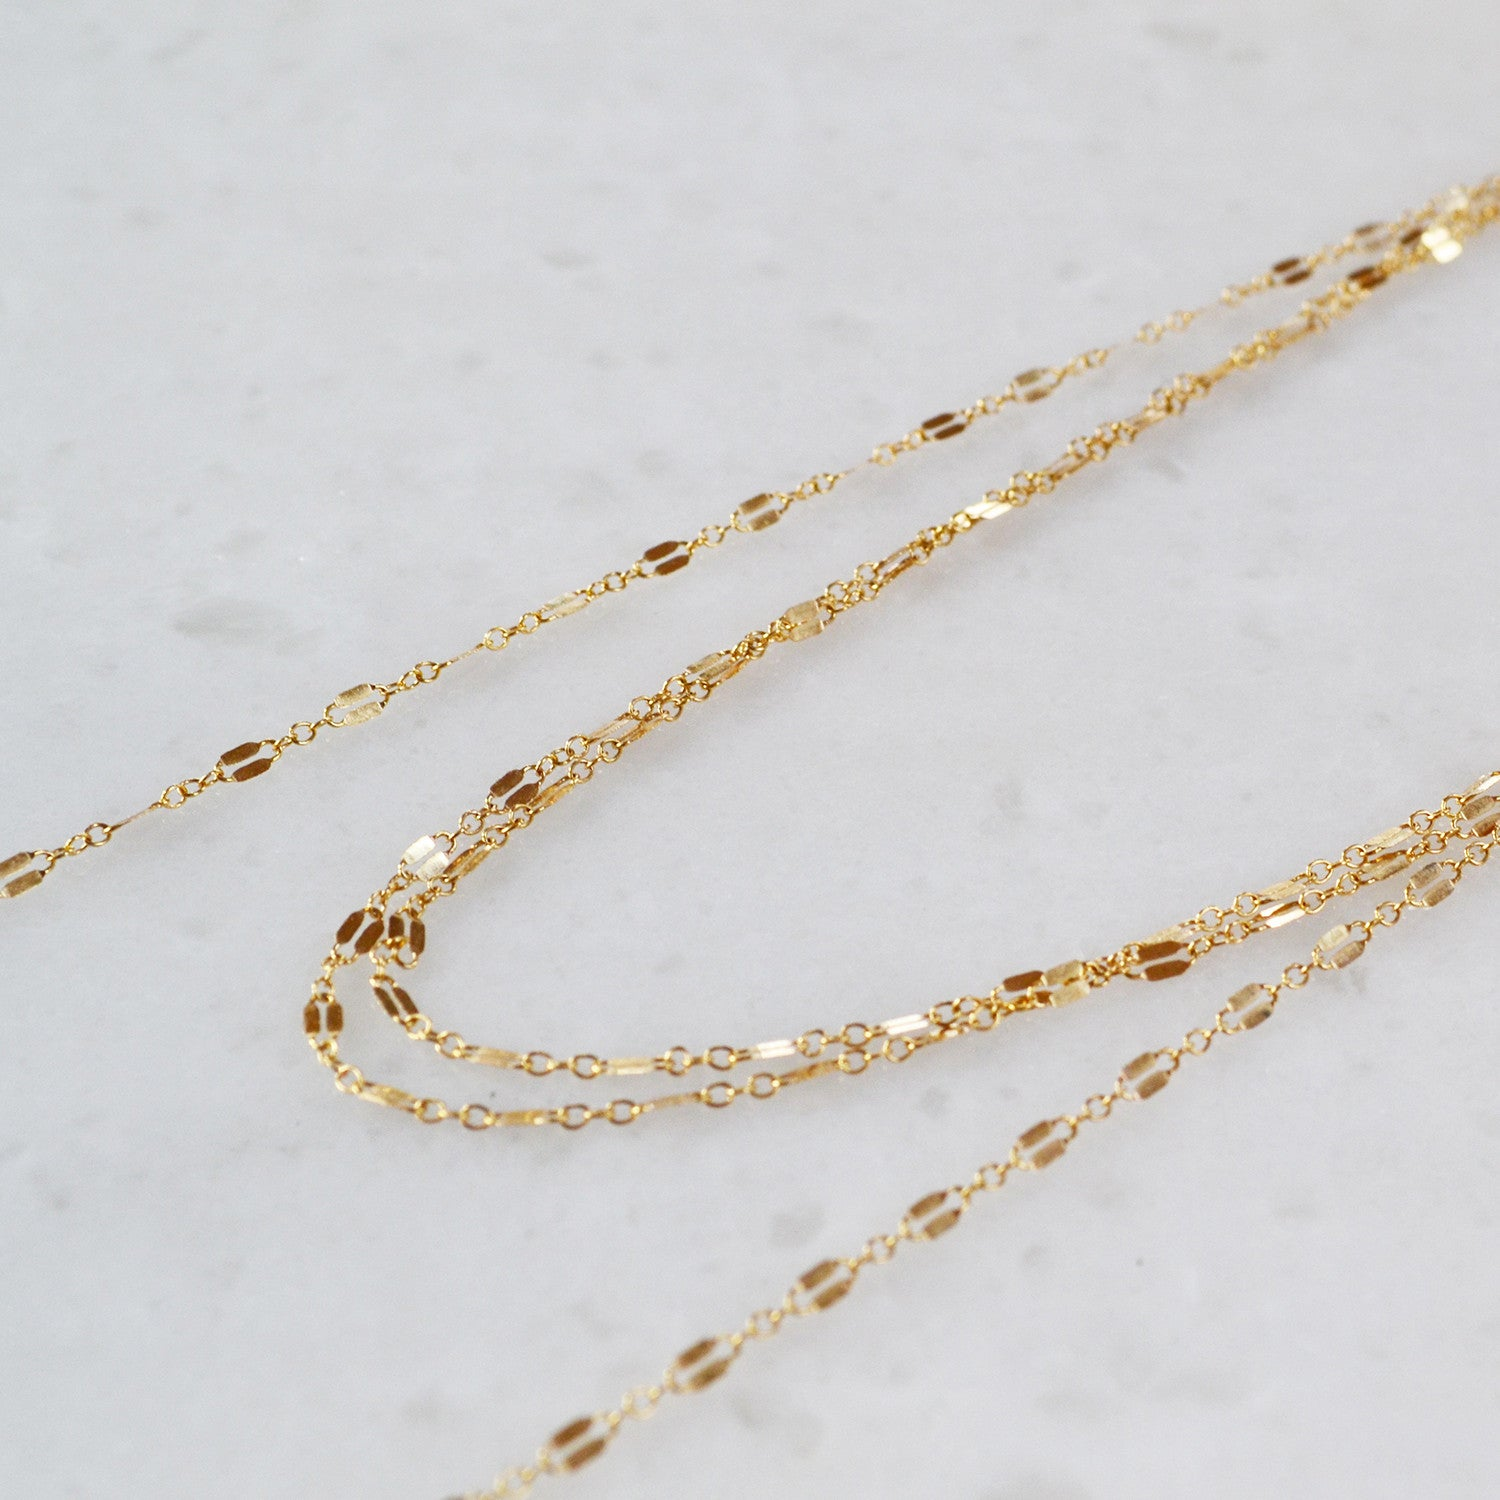 Chain Wrap Choker Necklace, Gold, Rose Gold, or Sterling